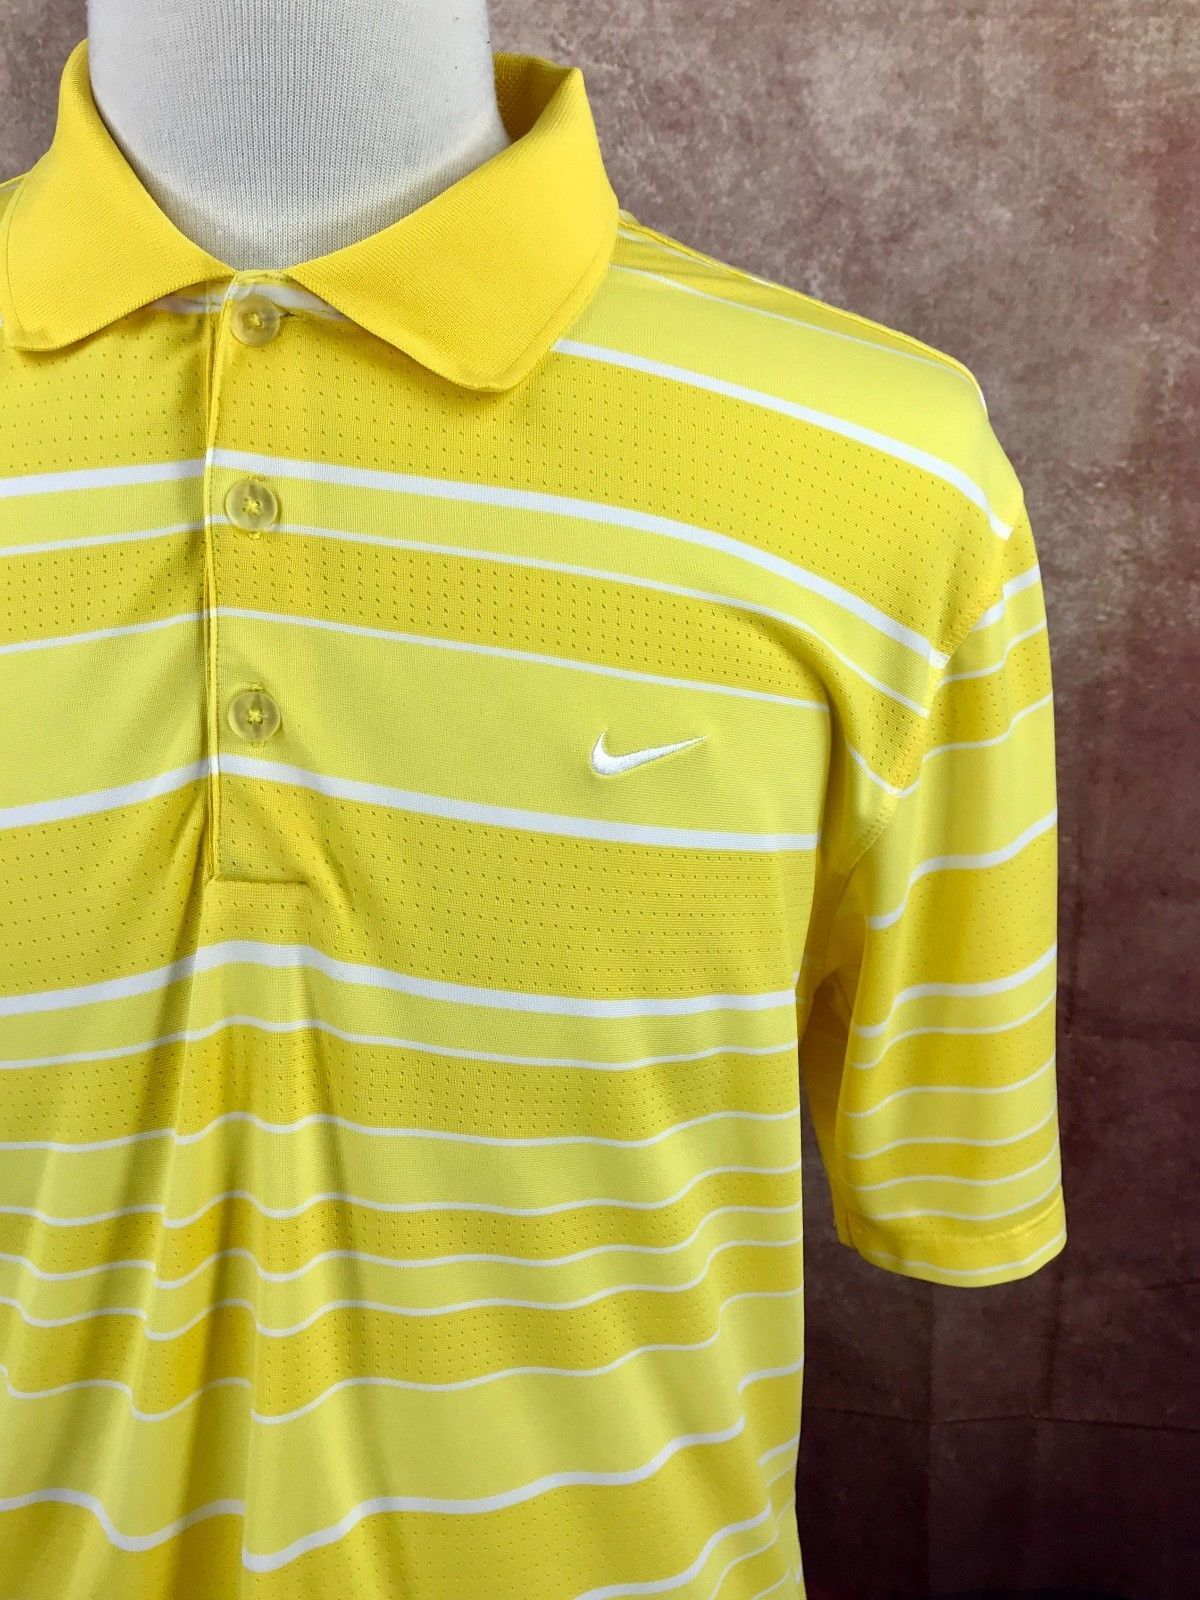 dcf9a94c7 Nike Golf Tour Performance Dri-Fit Short Sleeve Yellow Stripe Polo Shirt  Men's L